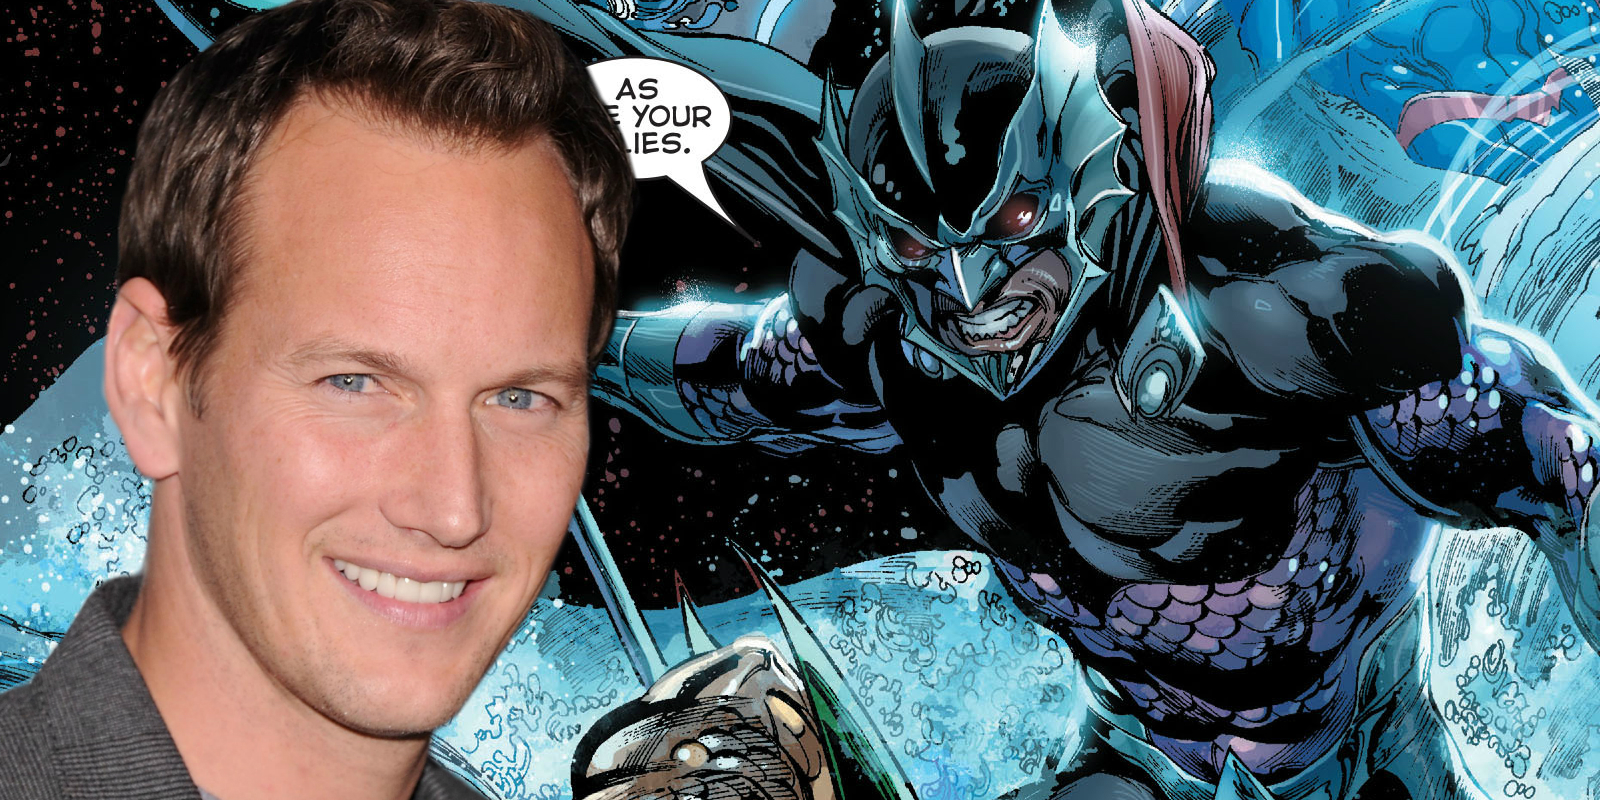 Patrick Wilson as Orm aka Ocean Master for Aquaman